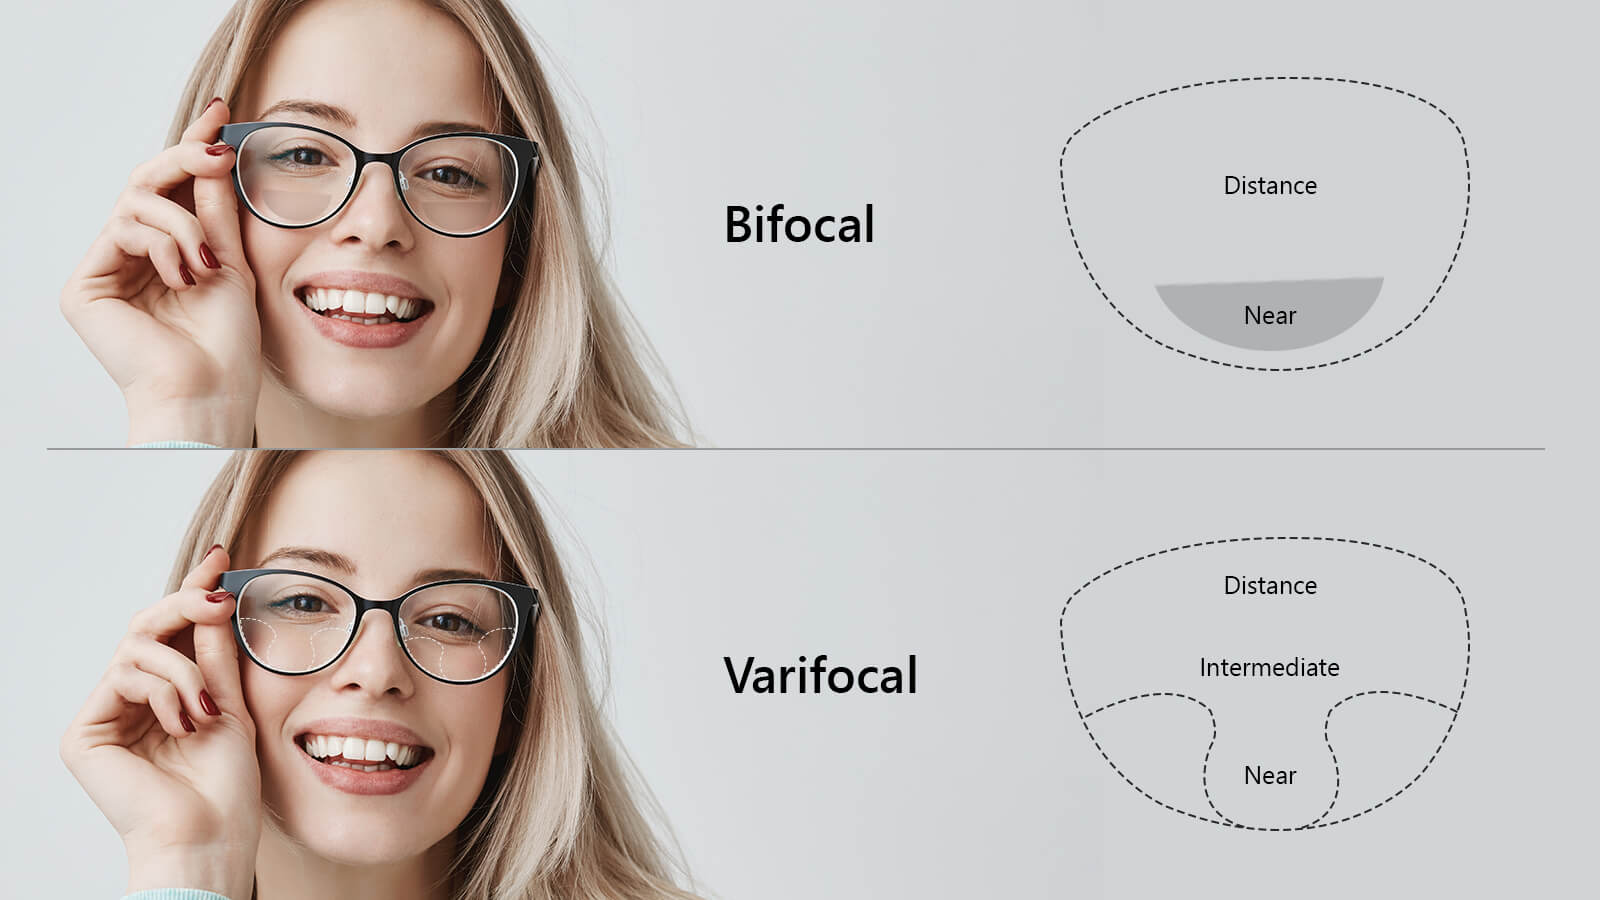 Are bifocals cheaper than Varifocals?